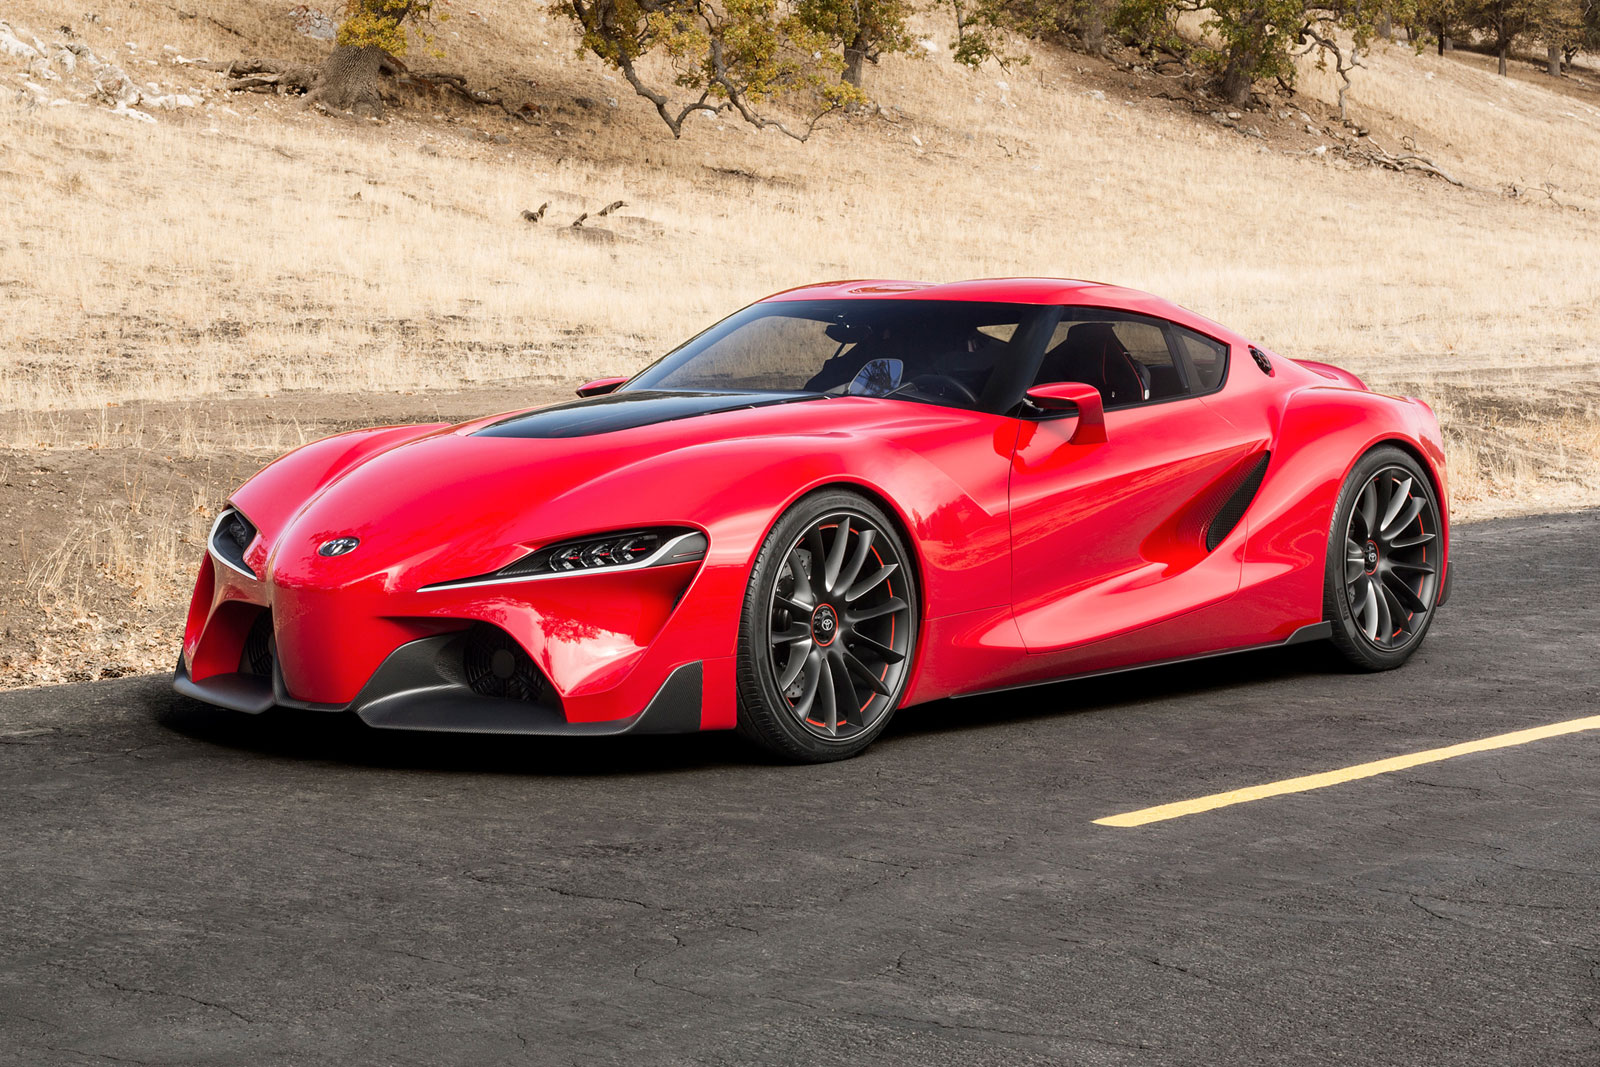 Toyota Ft 1 Concept Car Body Design